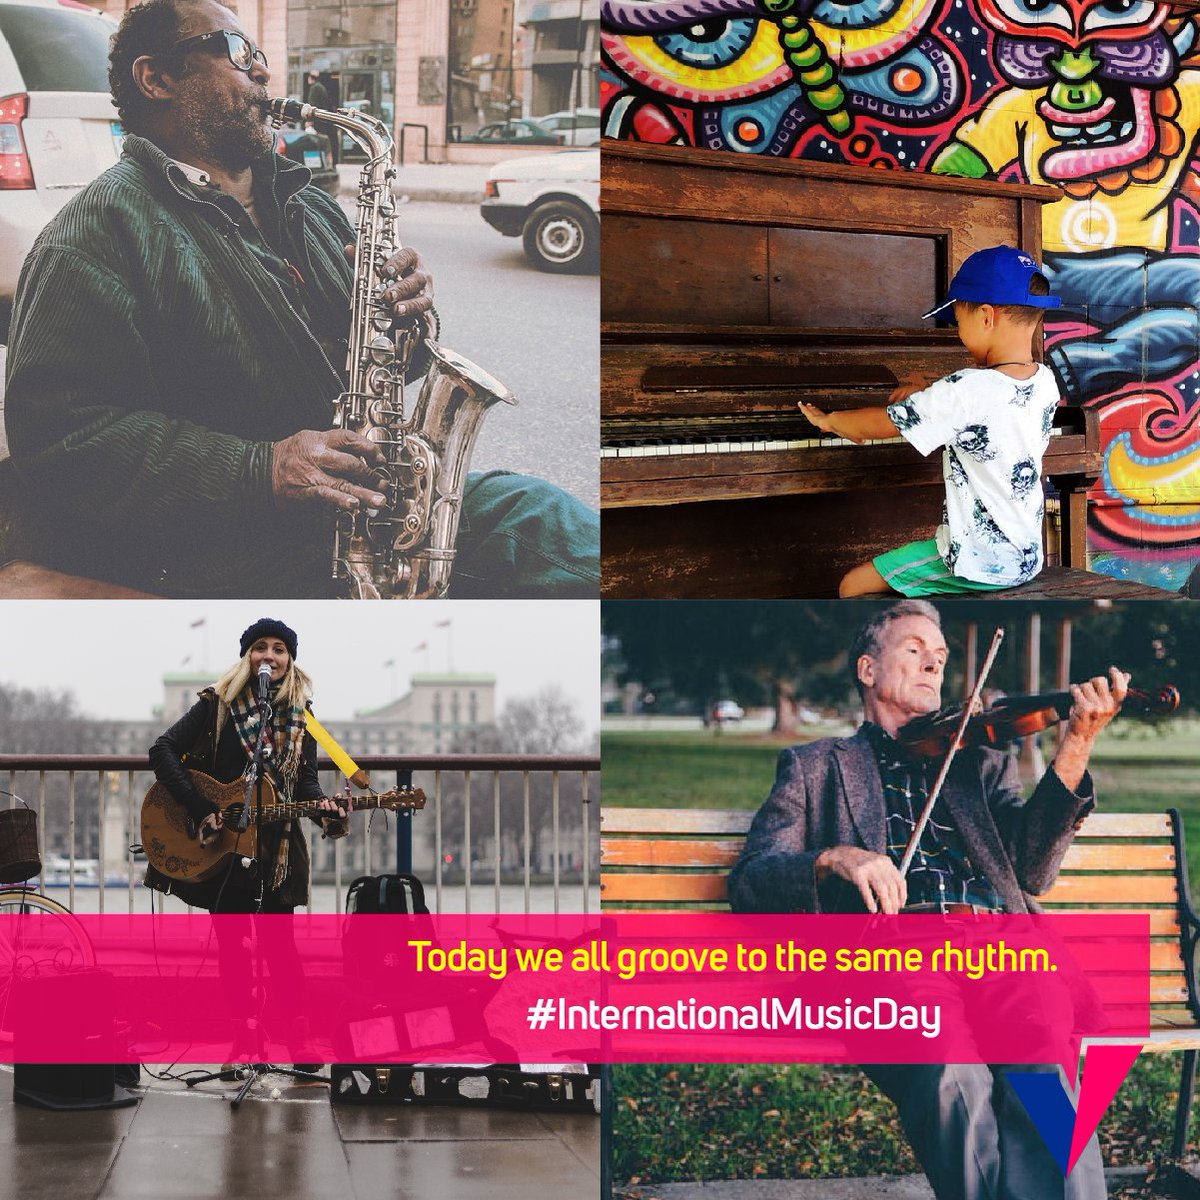 No matter what kind of music you like, today let's bring the music com...